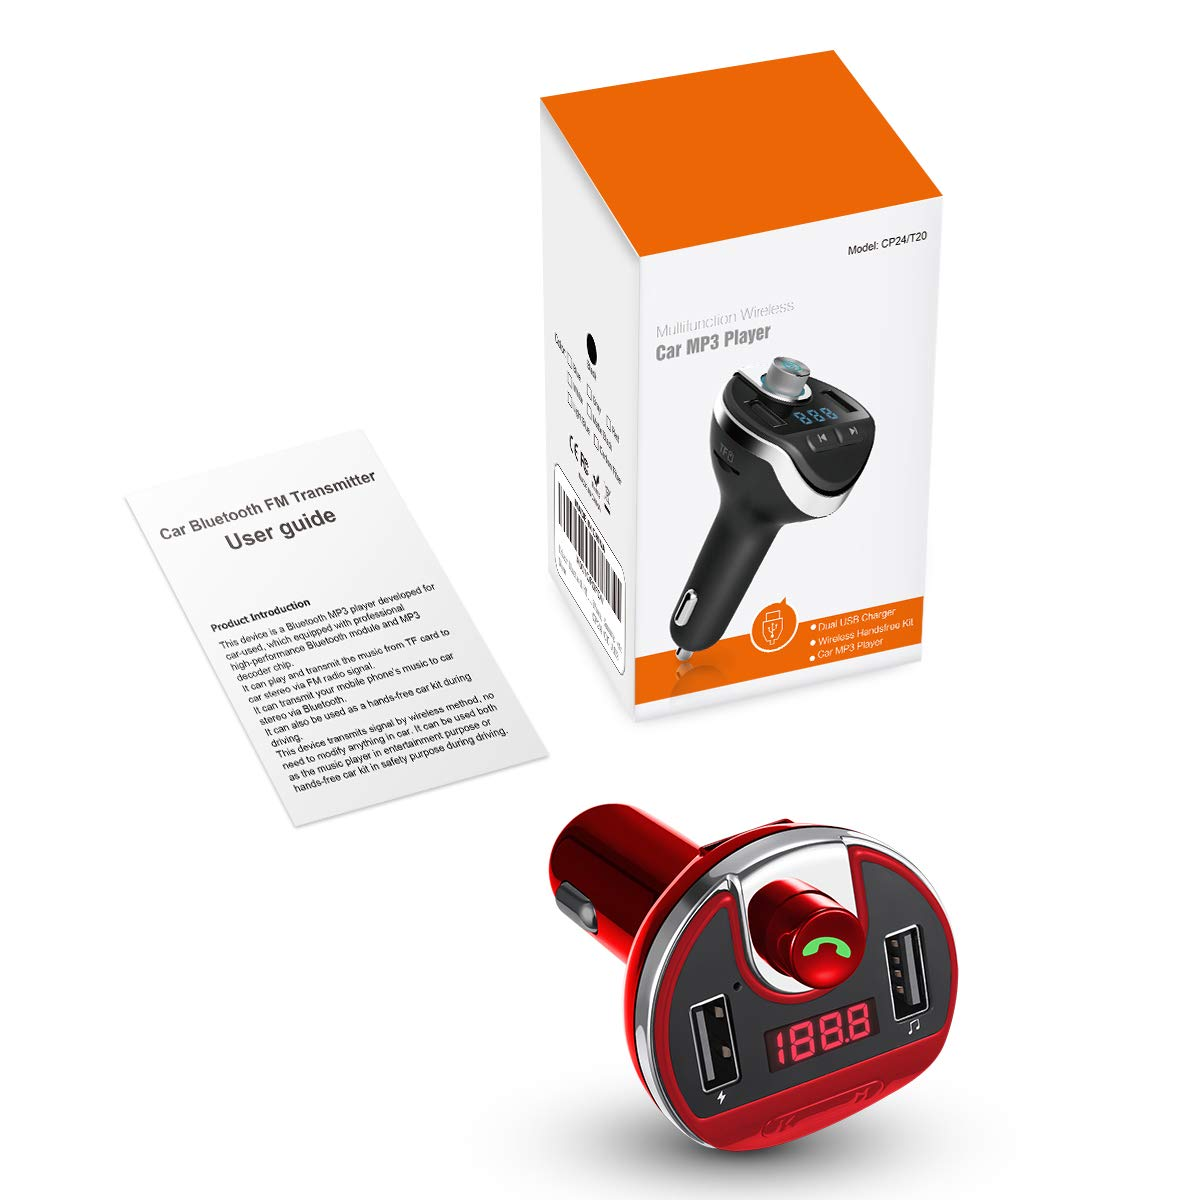 Universal Car Charger with USB Charging Ports Wireless FM Radio Adapter Car Kit Upgraded Red U Disk// TF Card Support KeeKit Bluetooth FM Transmitter for Car Hands-Free Calling MP3 Music Player